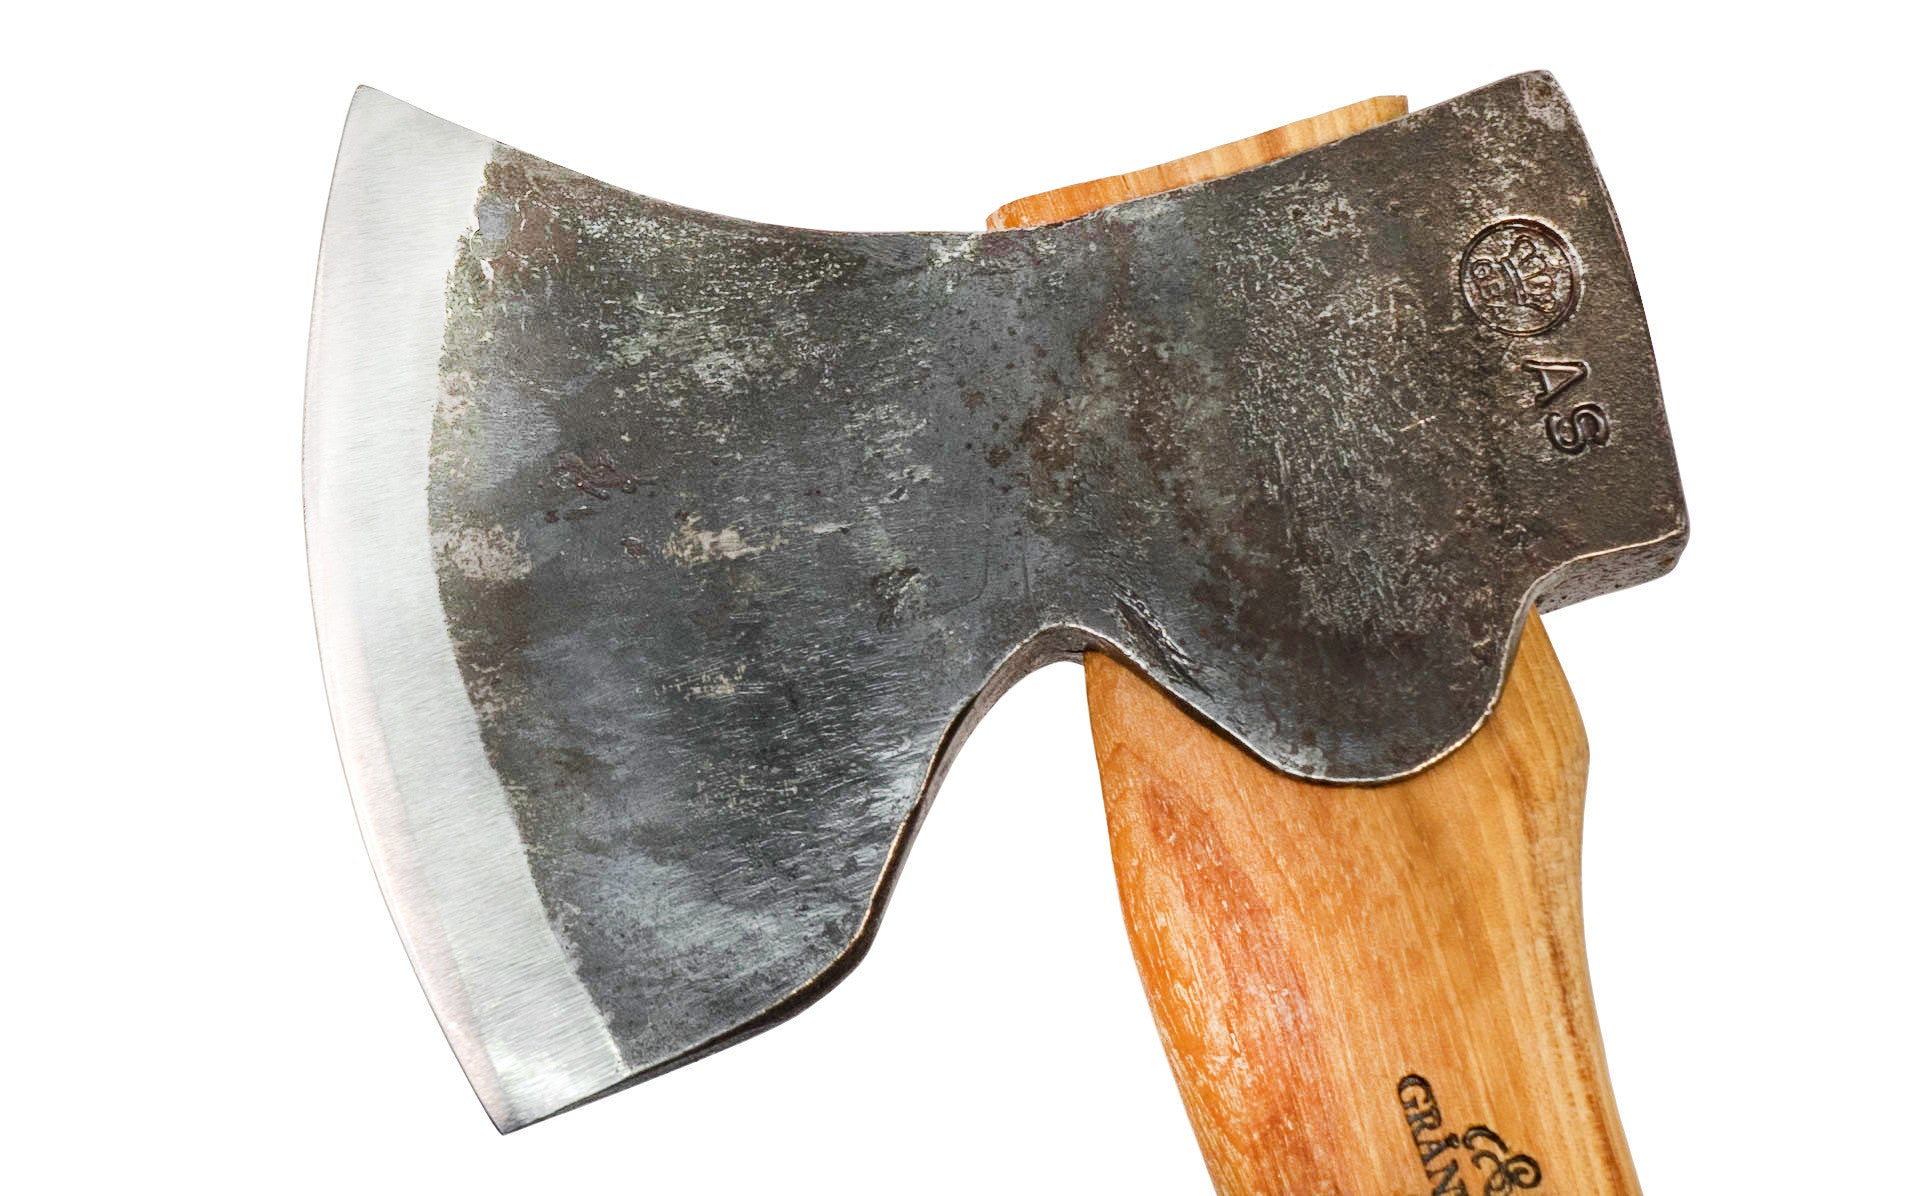 Gransfors Bruk Swedish Carving Axe No. 475 Head